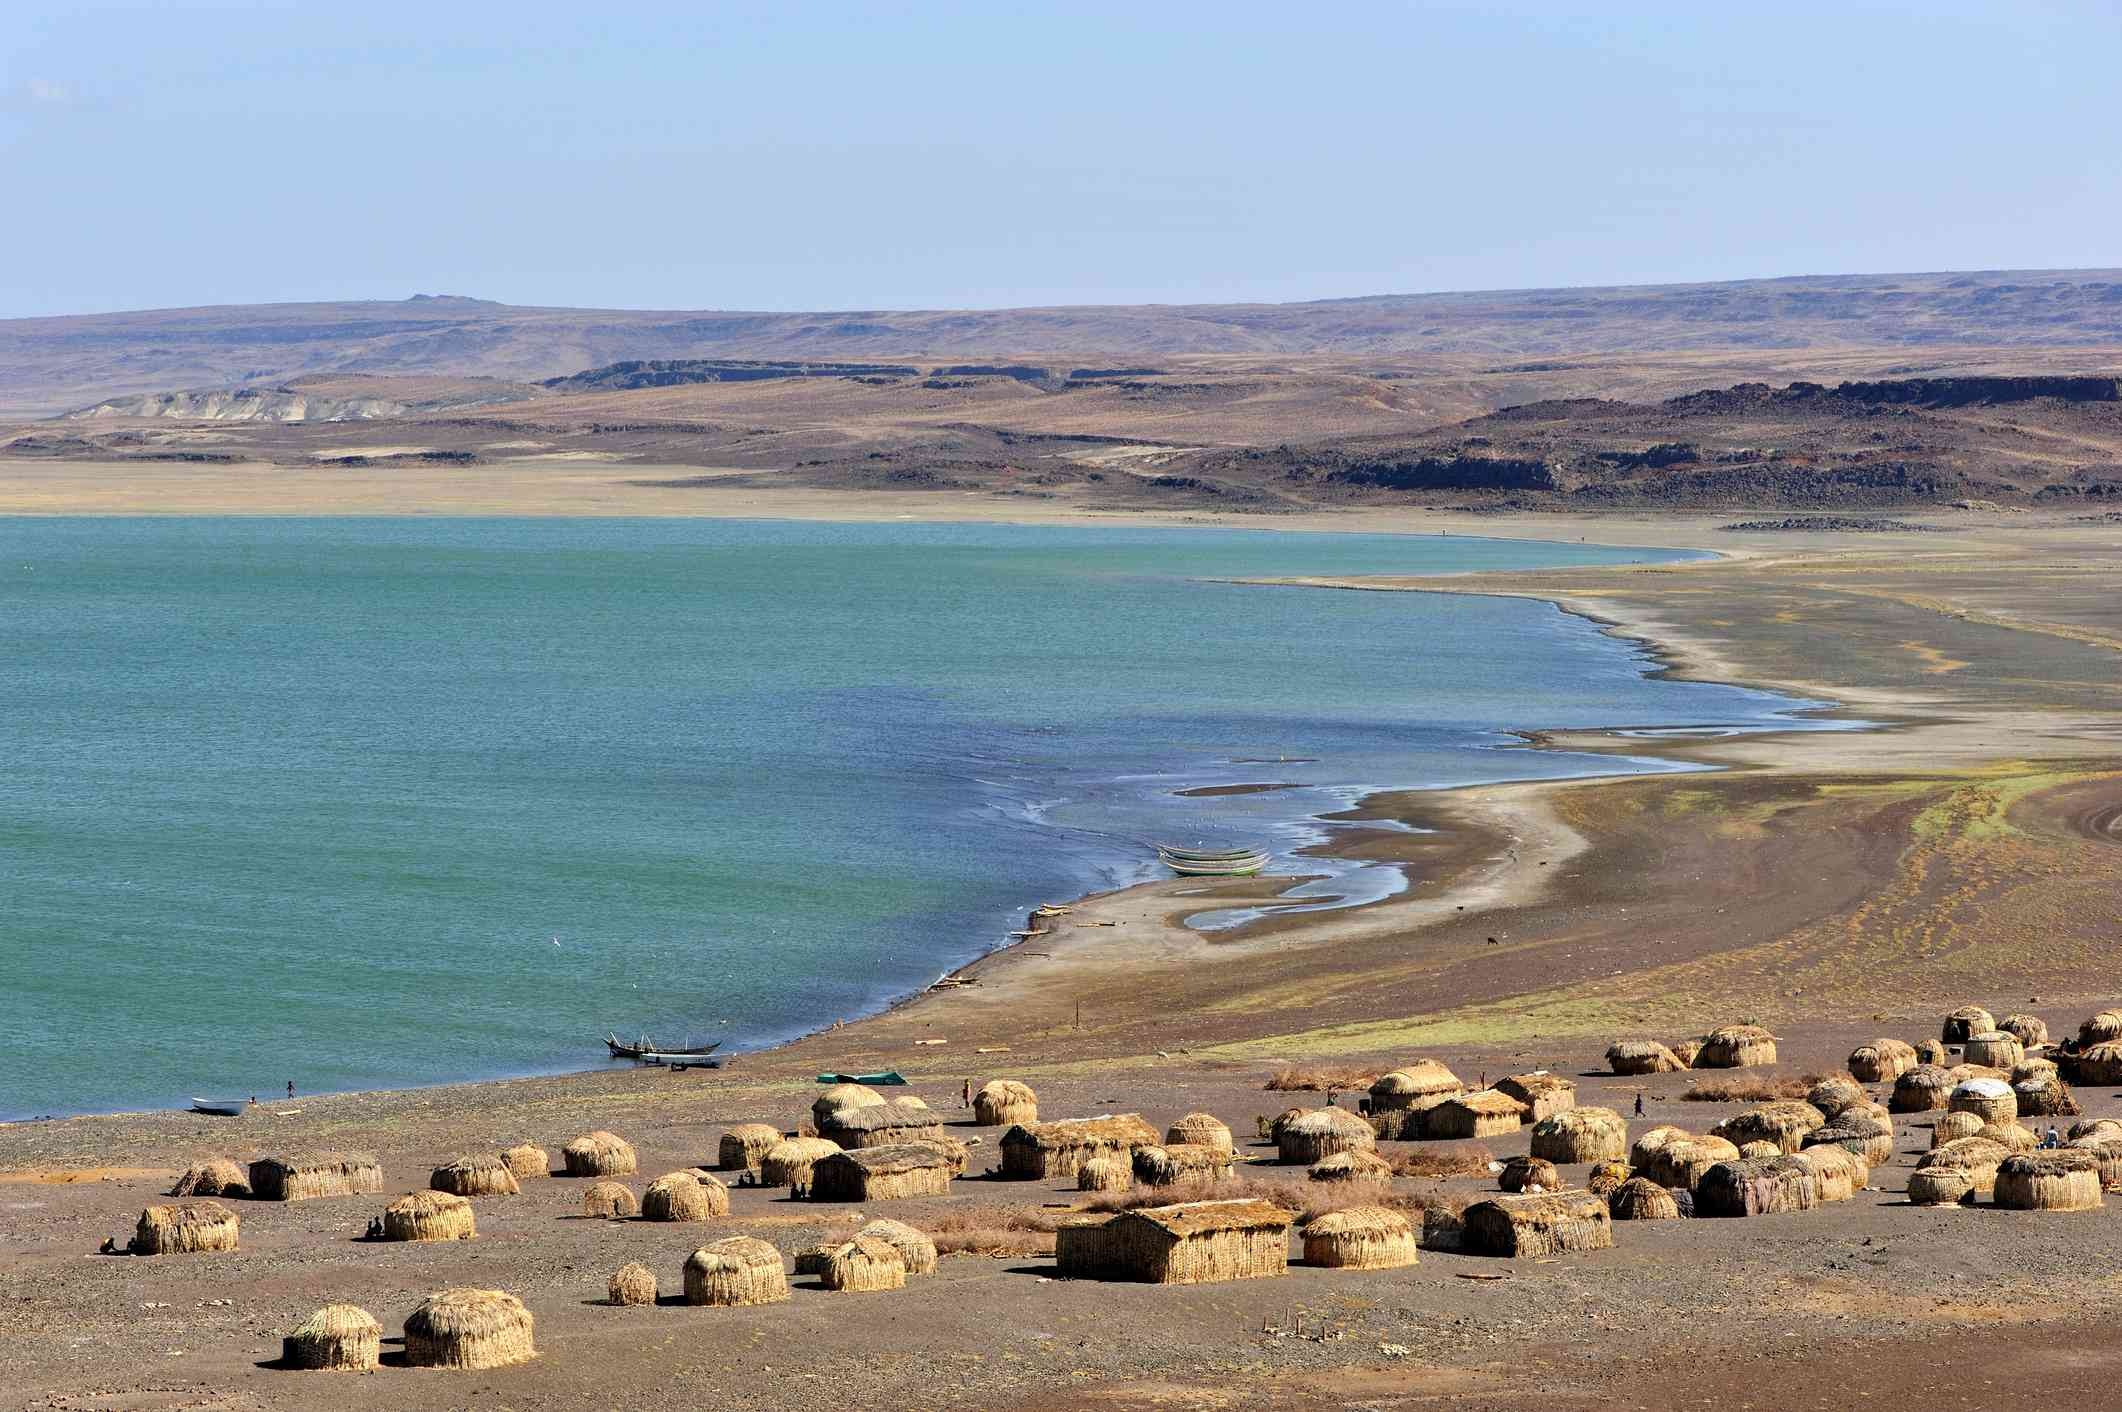 Tan colored African huts in the foreground along the blue-green waters of Lake Turkana under a clear, blue sky